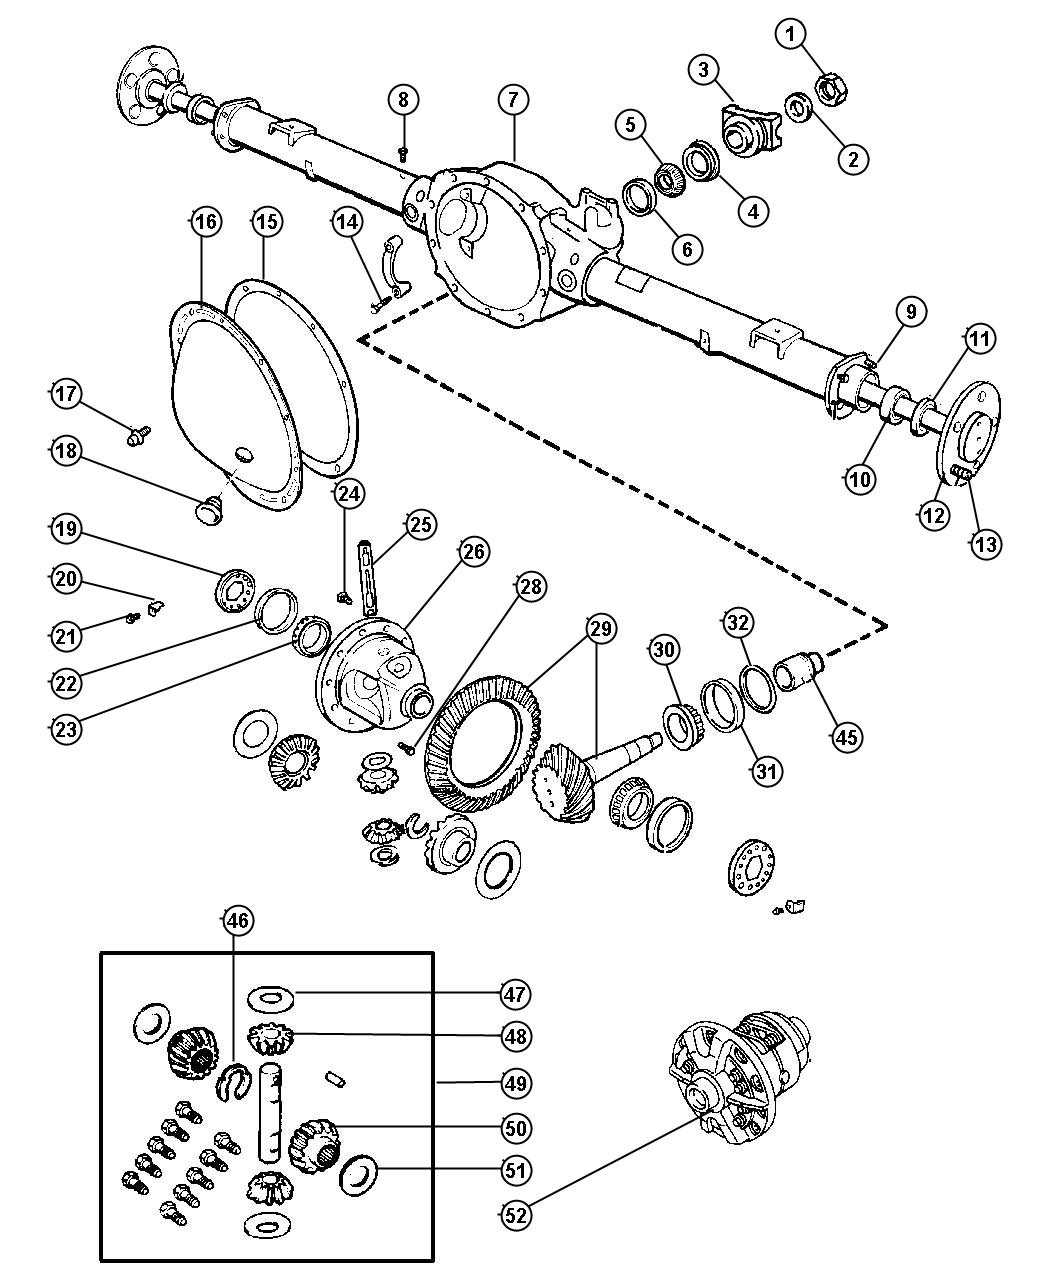 tags: #rear differential diagram for 2002 f 150#ford f 150 rear end  parts#1962 ford 8 inch rear axle diagrams#1966 gm differential diagram#1967 ford  rear